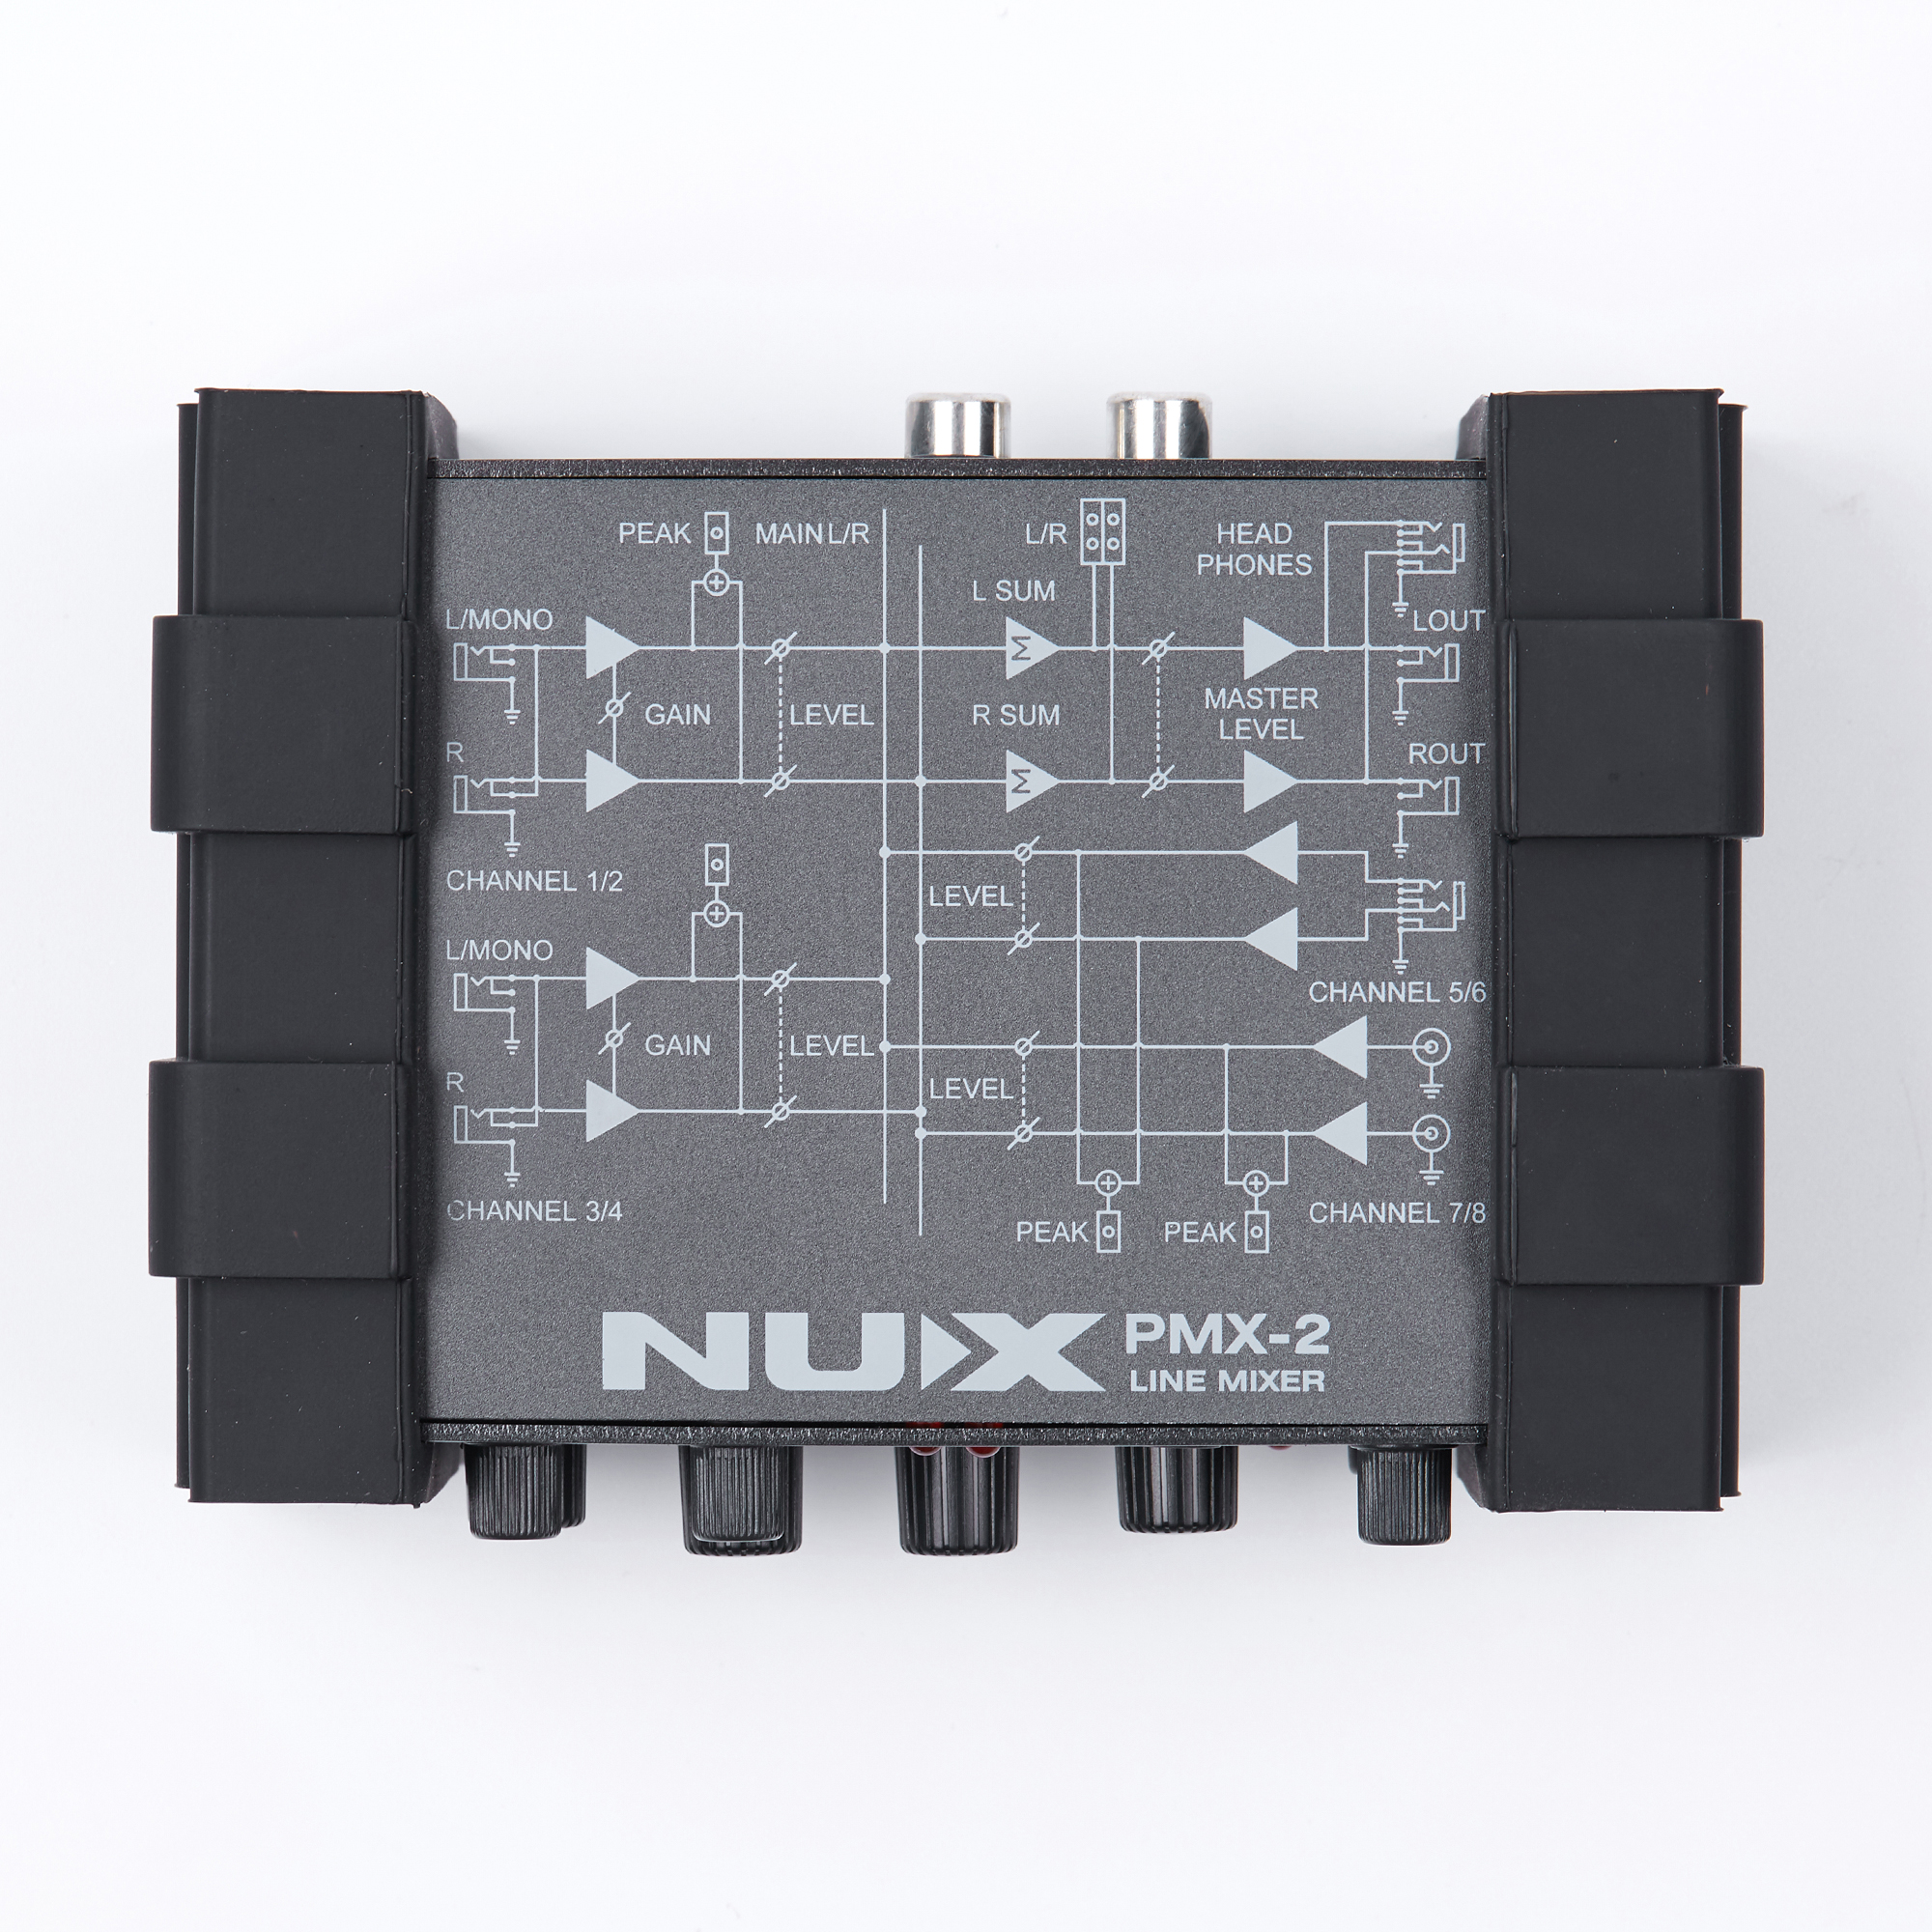 Gain Control 8 Inputs and 2 Outputs NUX PMX-2 Multi-Channel Mini Mixer 30 Musical Instruments Accessories for Guitar Bass Player lace panel sleeveless a line dress